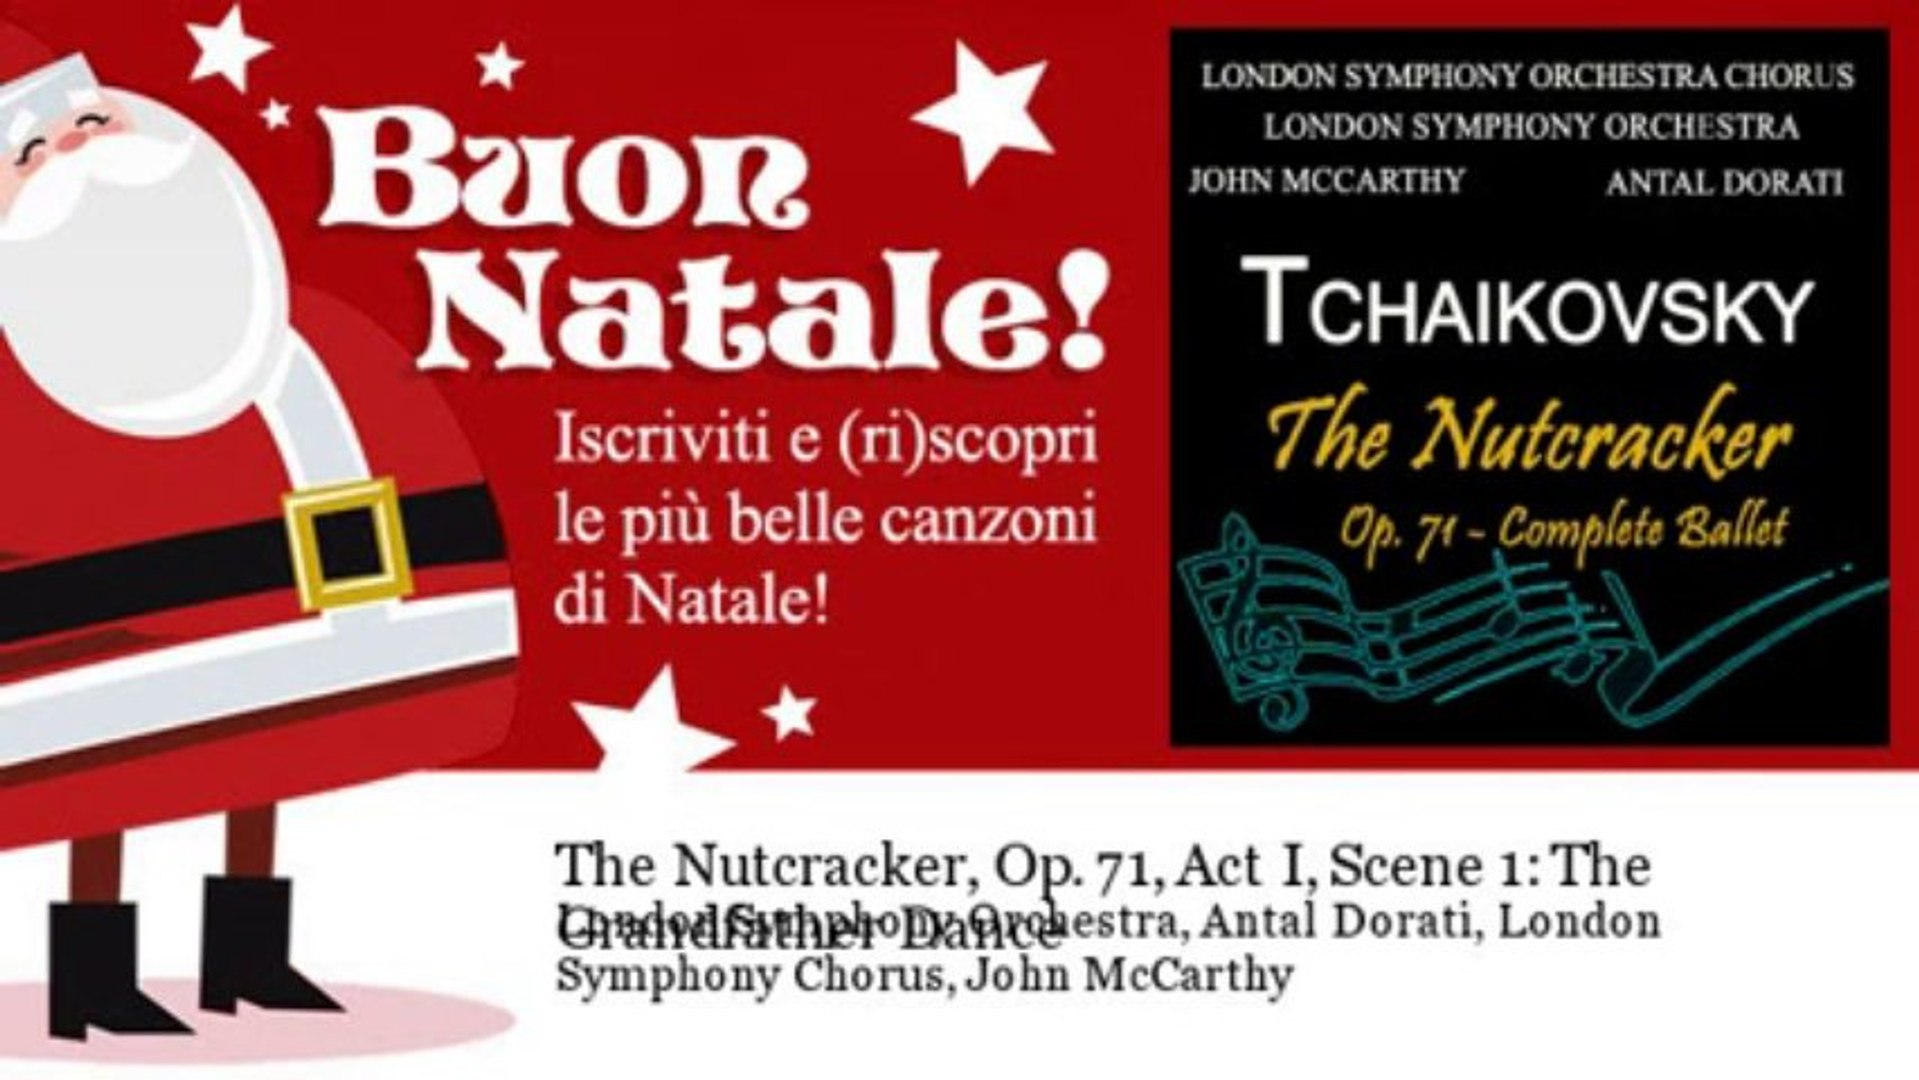 London Symphony Orchestra, Antal Dor - The Nutcracker, Op. 71, Act I, Scene 1: The Grandfather Dance